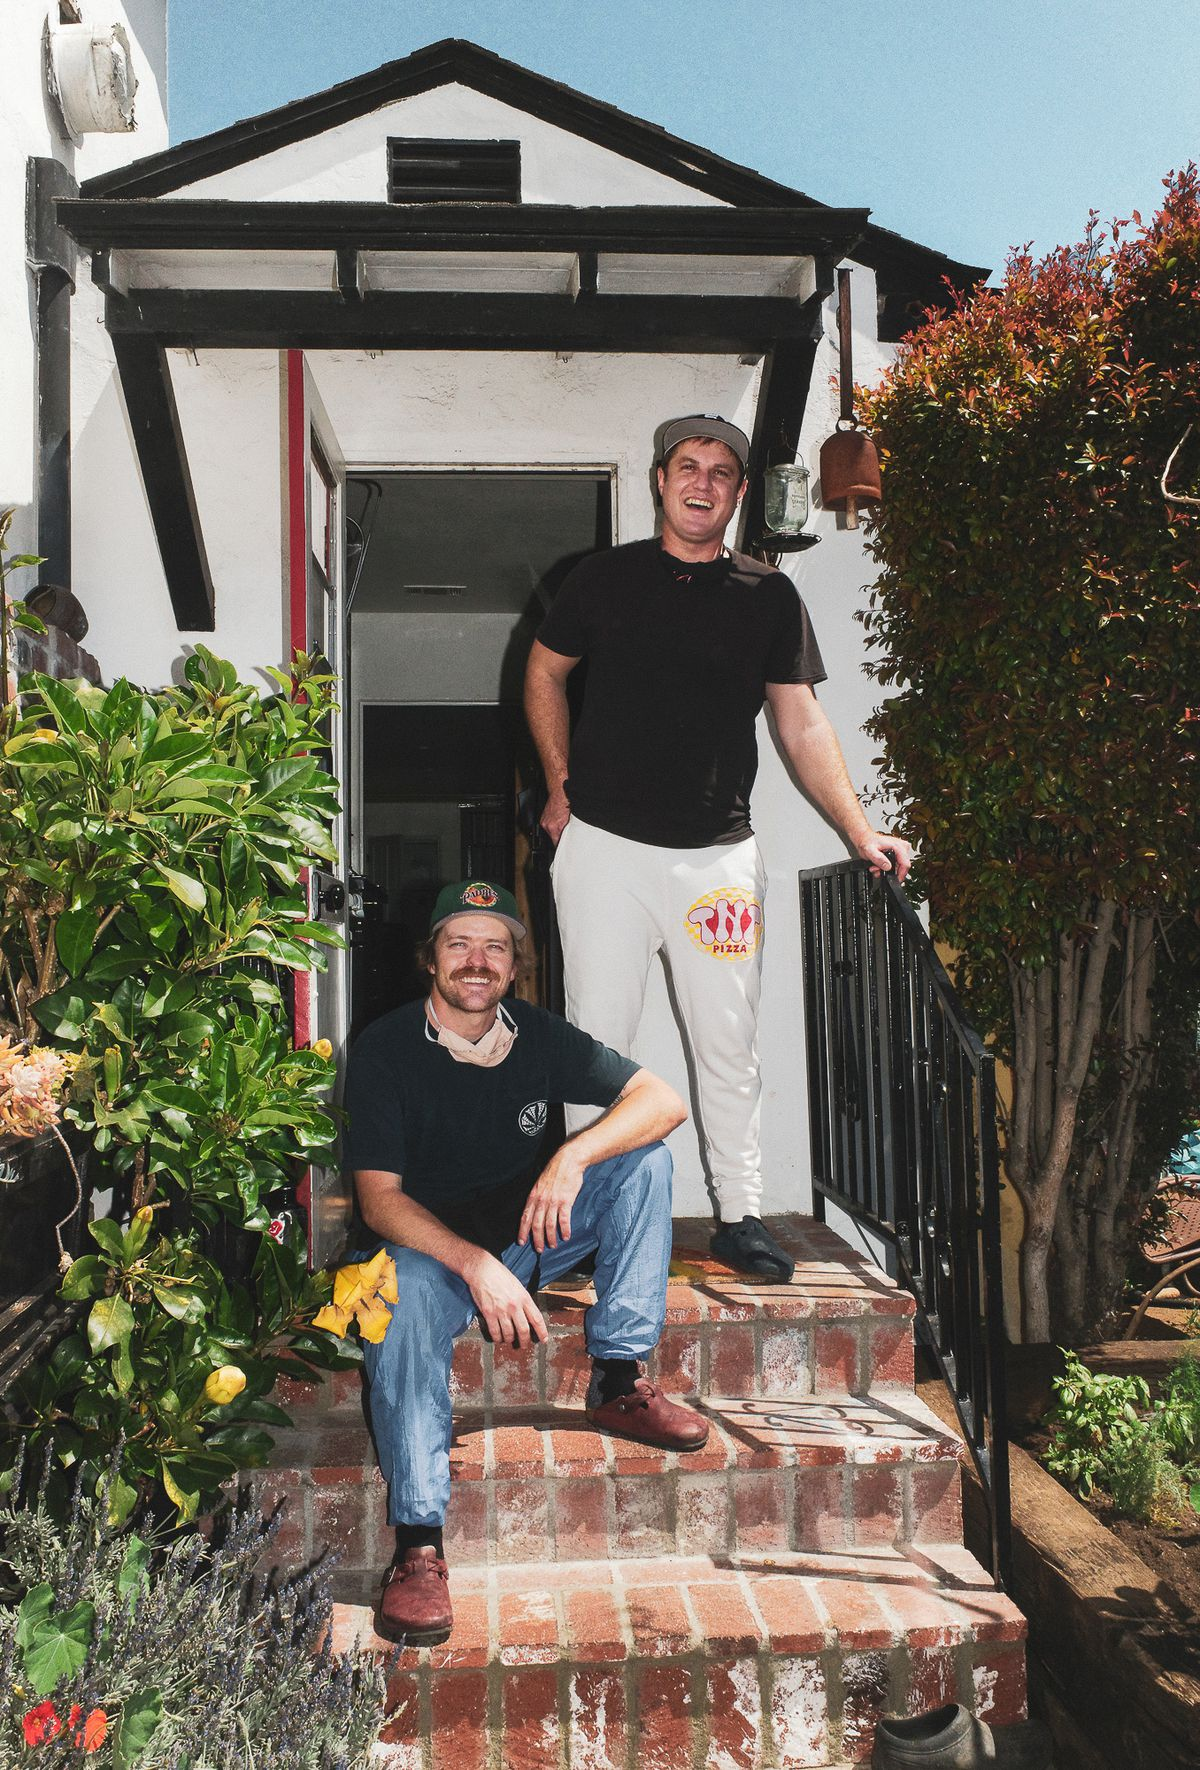 Tnt Pizza owners Kevin Gist and Joseph Ghafouri Wehrly in front of a house